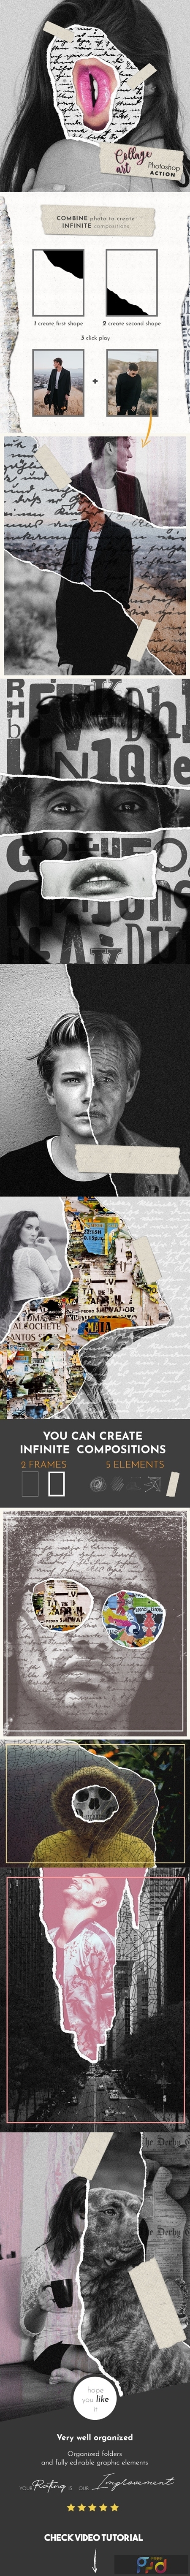 Collage Art Photoshop Action 23029863 1